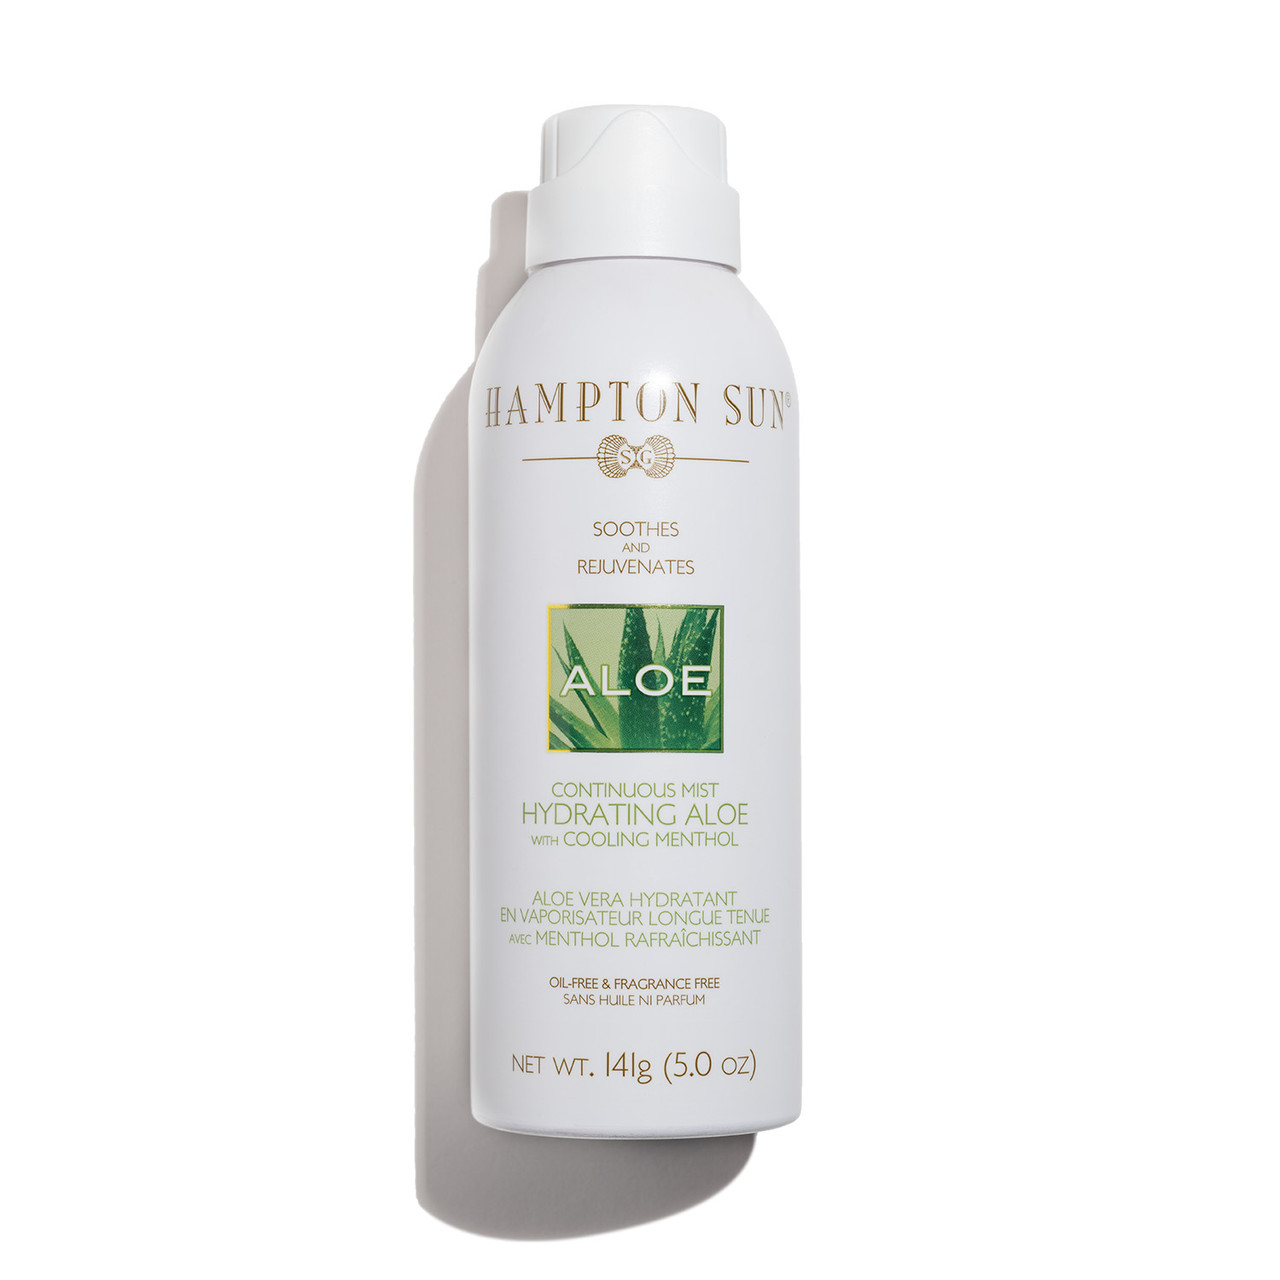 Hydrating Aloe Mist 5.0 oz.